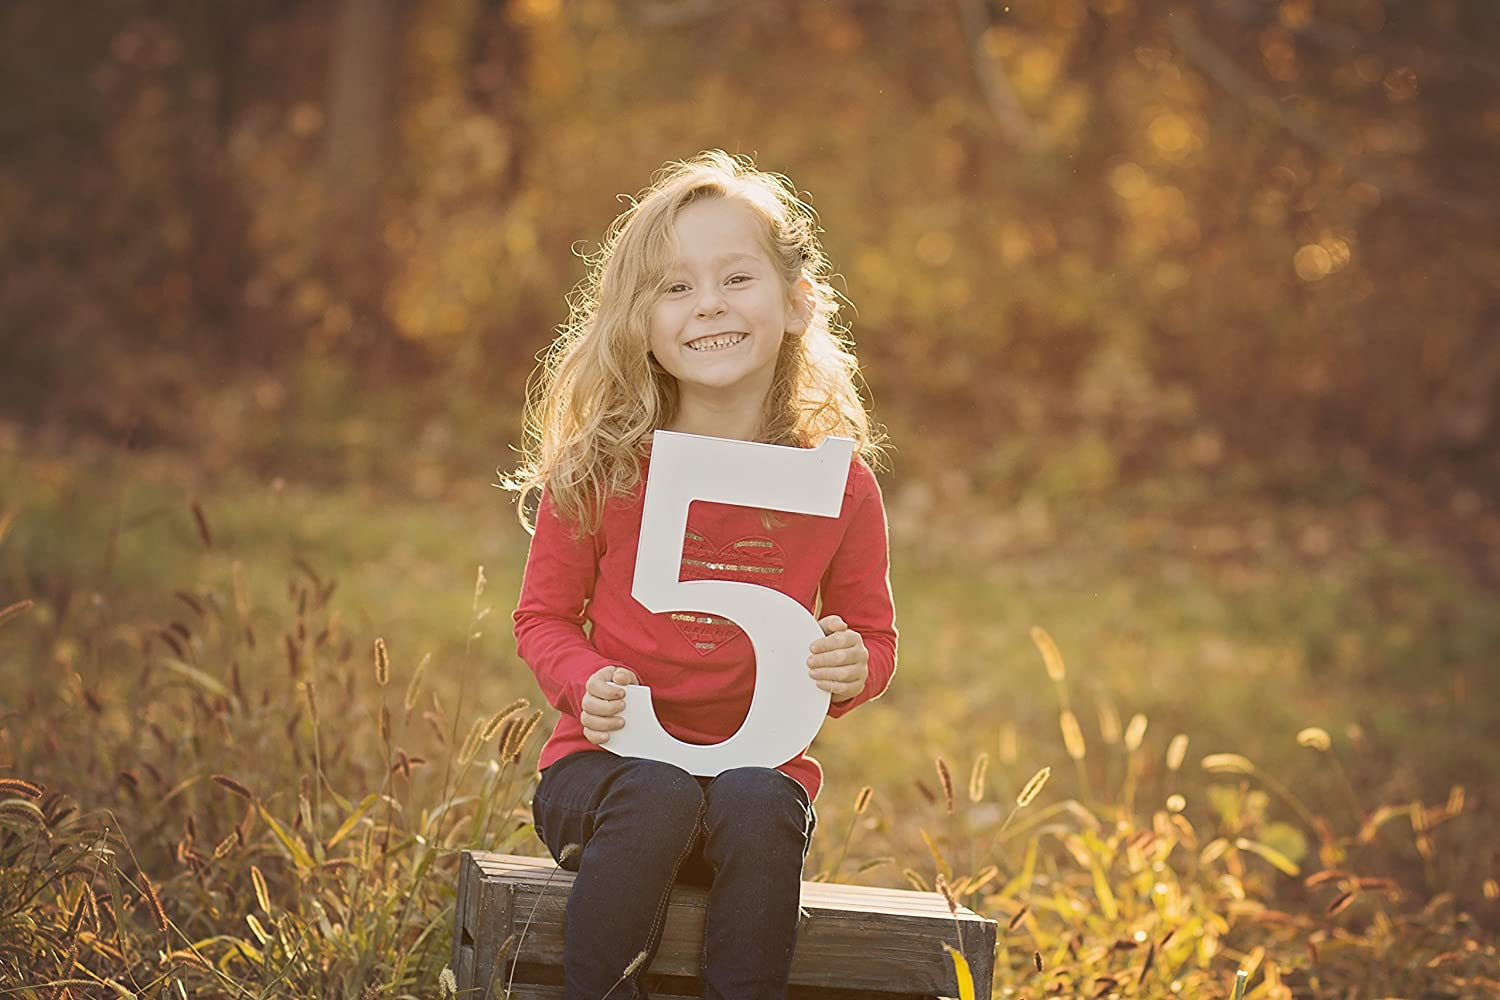 5 Sign Wooden Number Children's Photo Prop Five Kids Photography Prop Birthday Photo Shoot Prop Wooden Number Sign